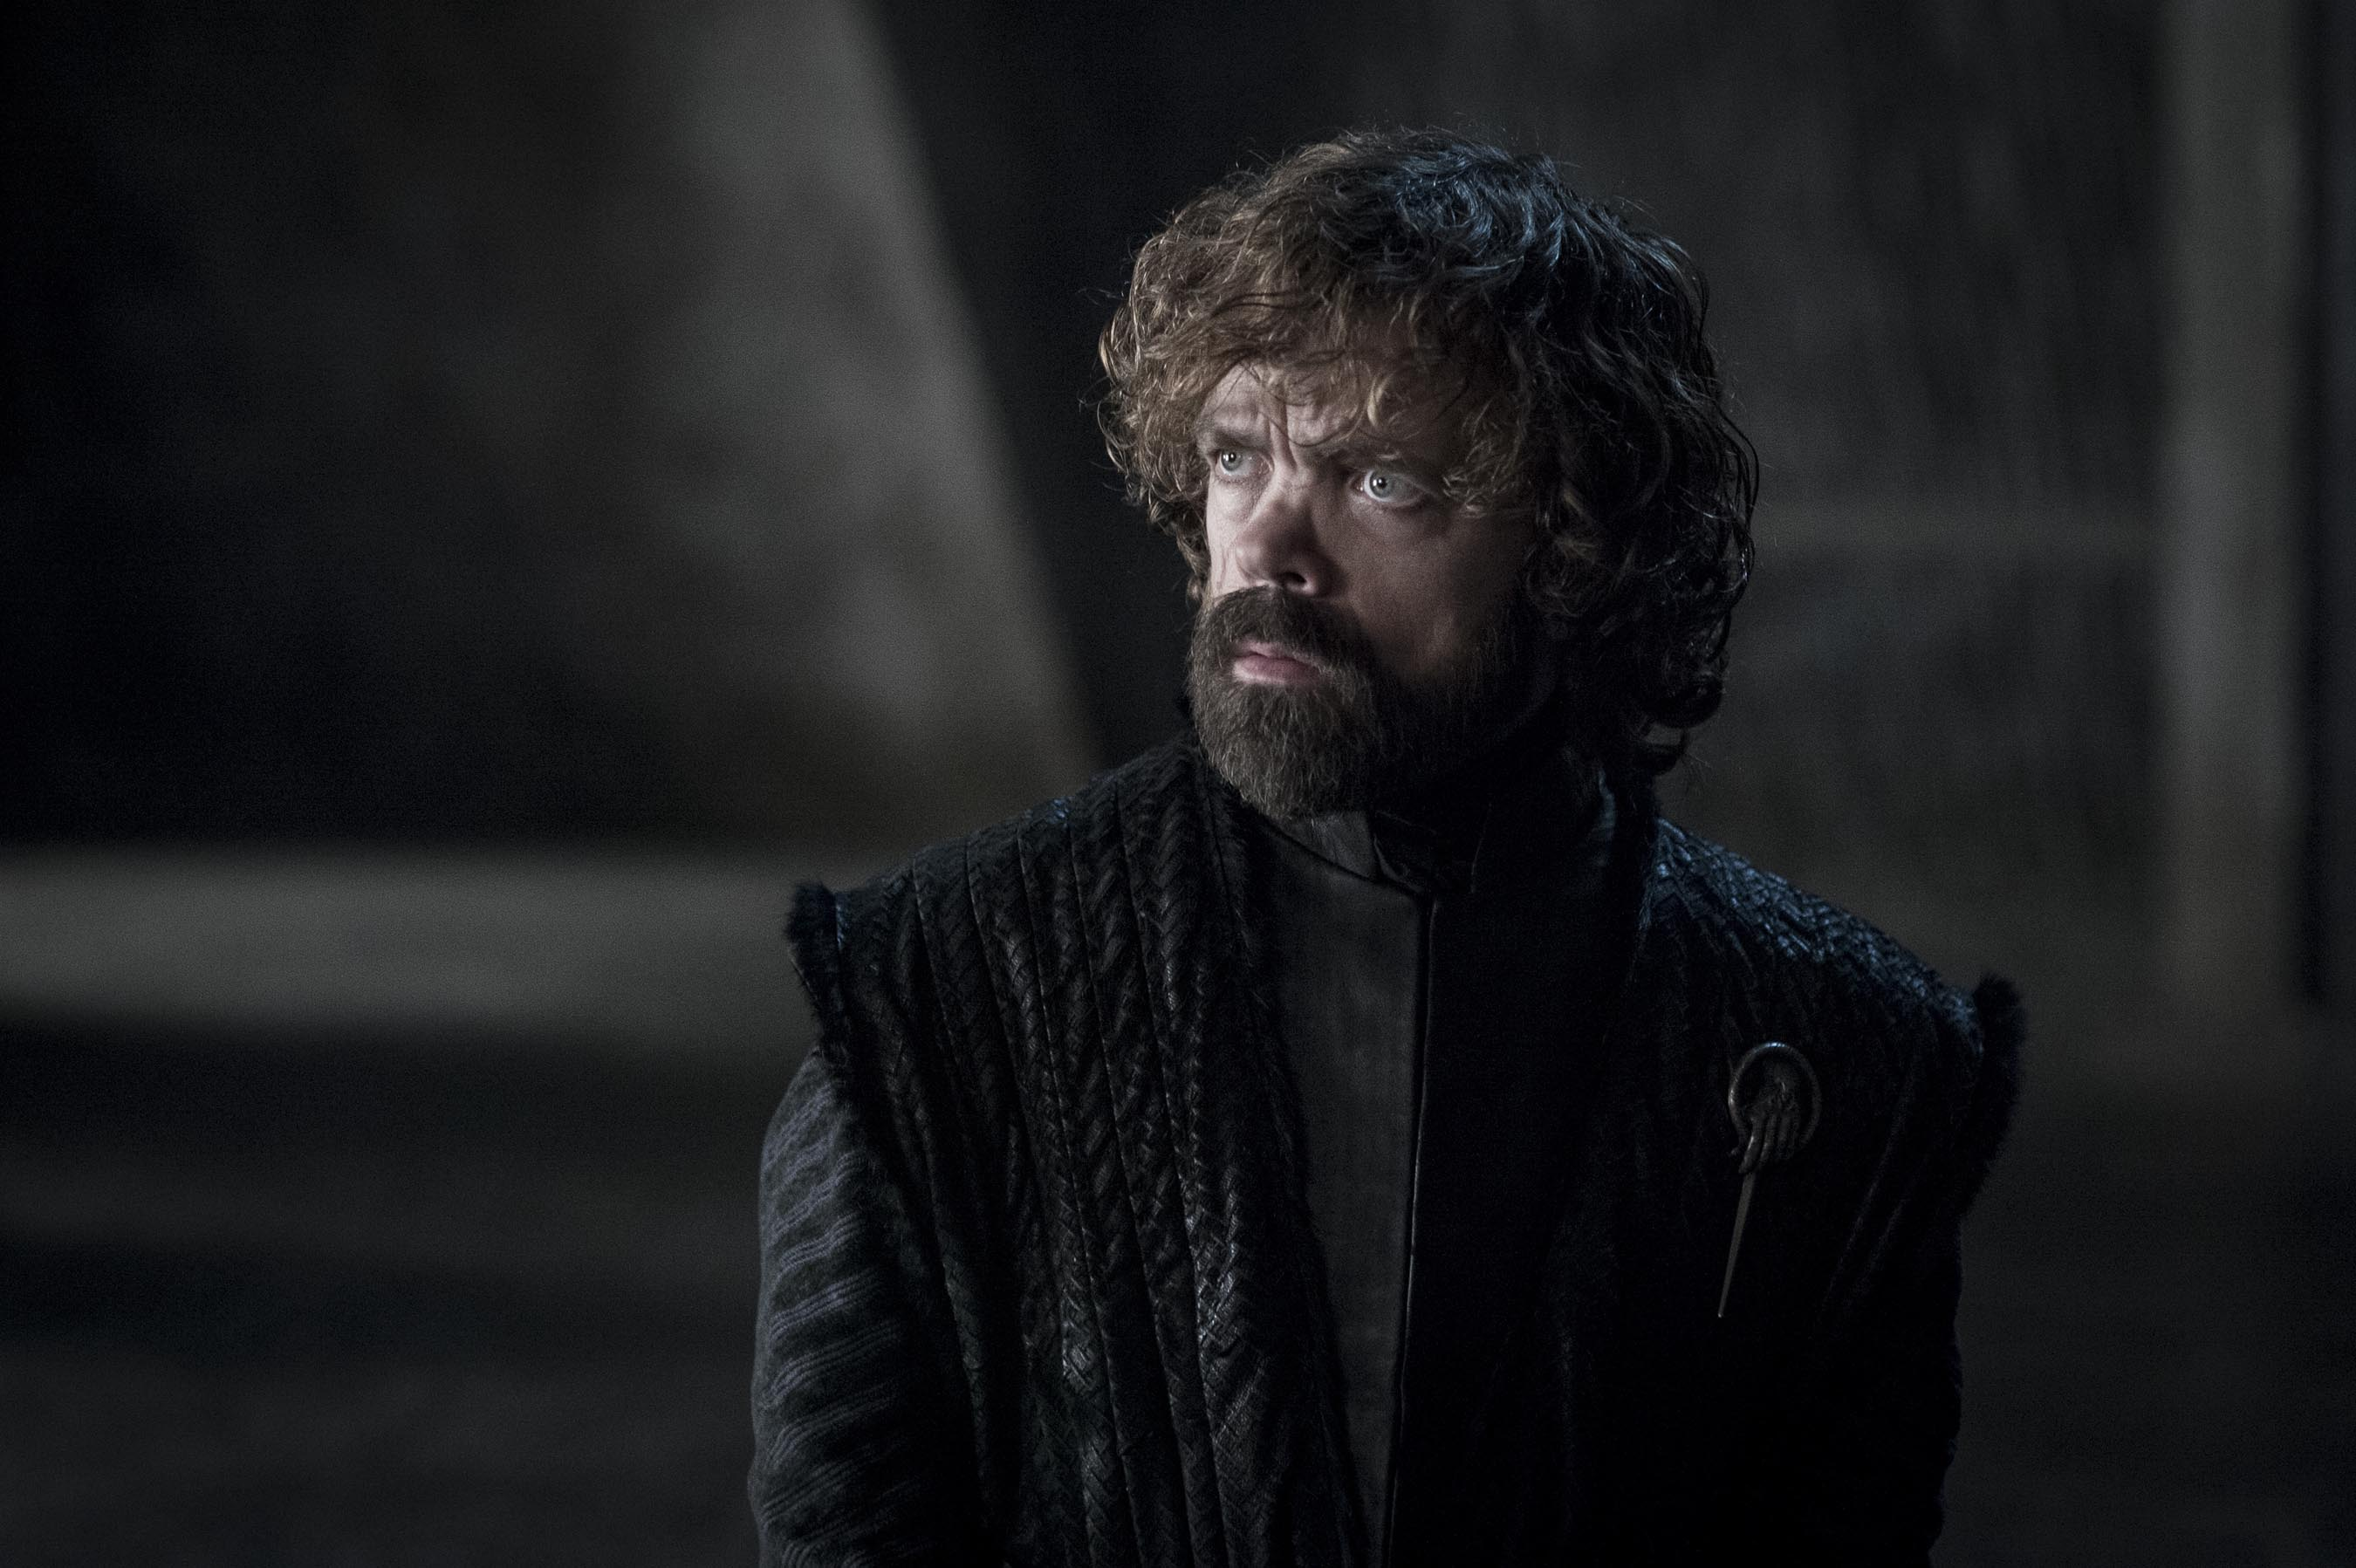 Game Of Thrones season 8 episode 6 spoilers, trailer and where to watch before Monday night